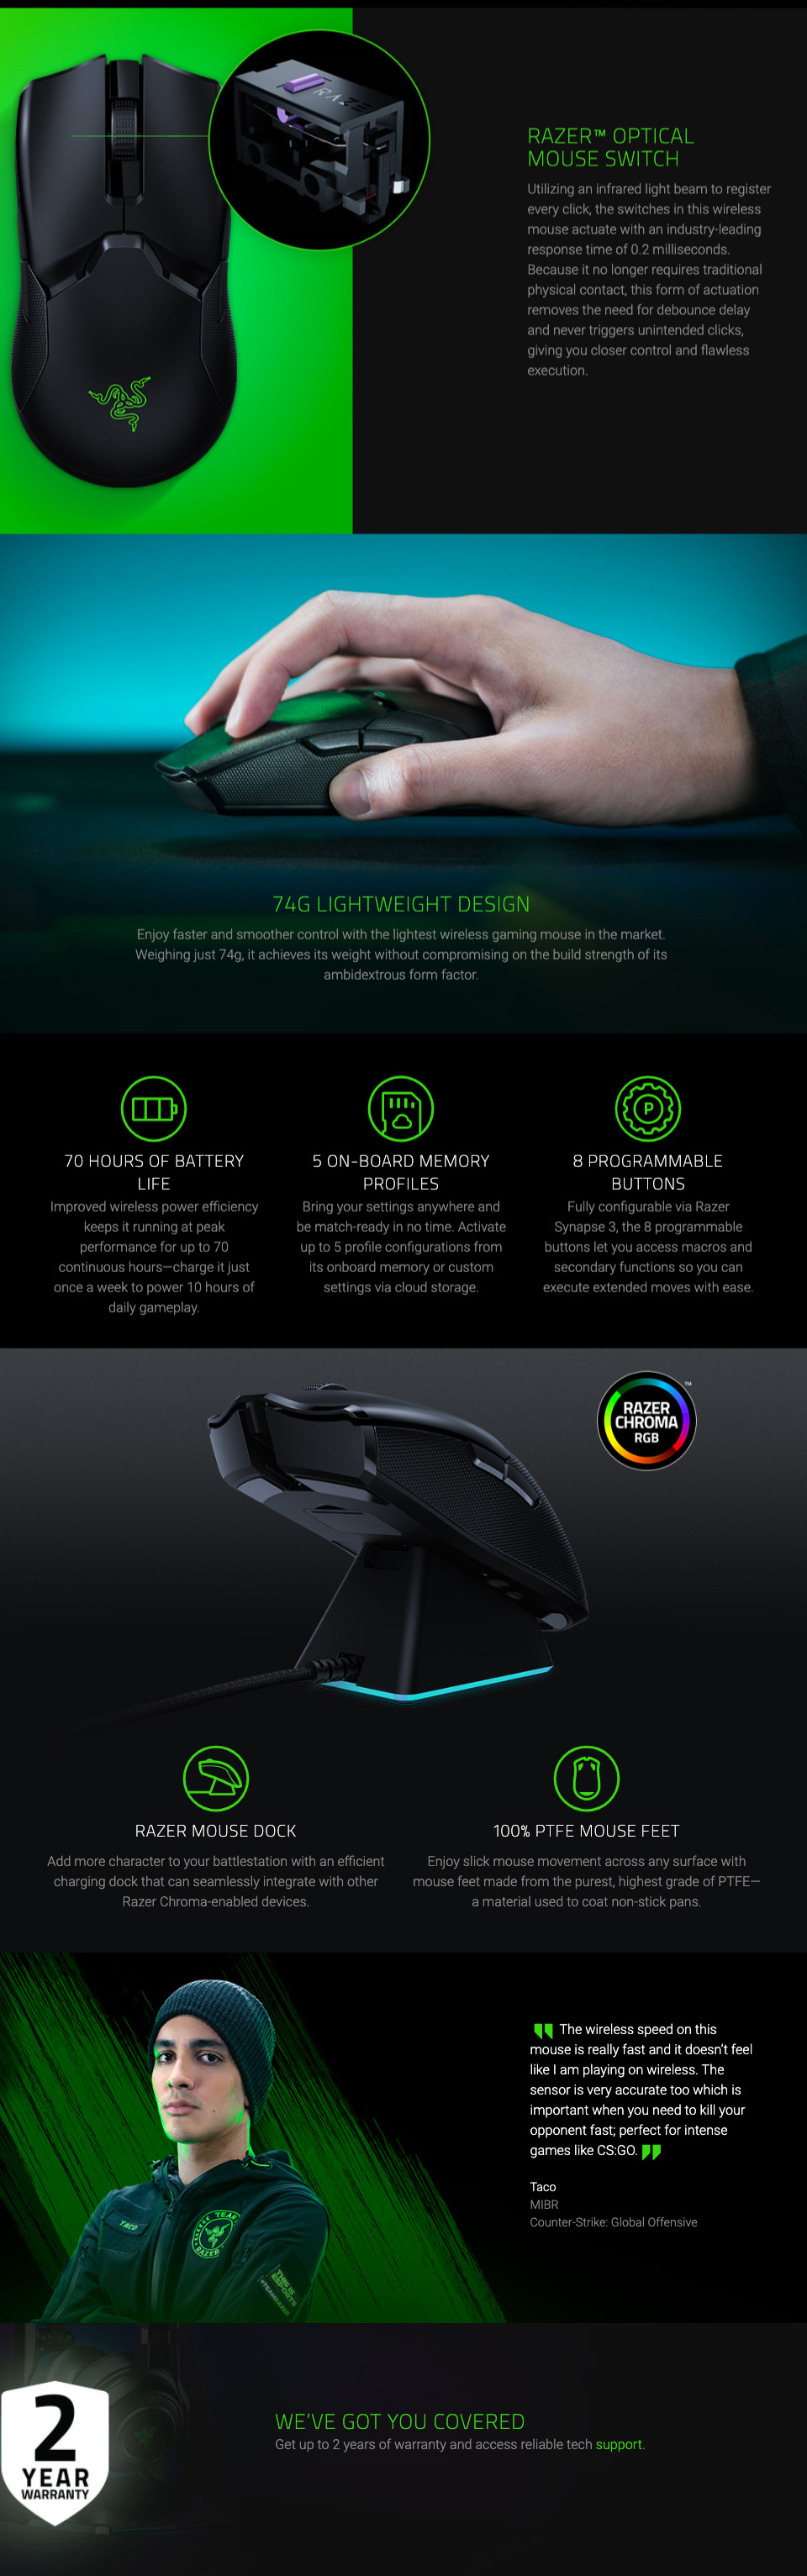 Razer Viper Ultimate Wireless Gaming Mouse with Charging Dock features